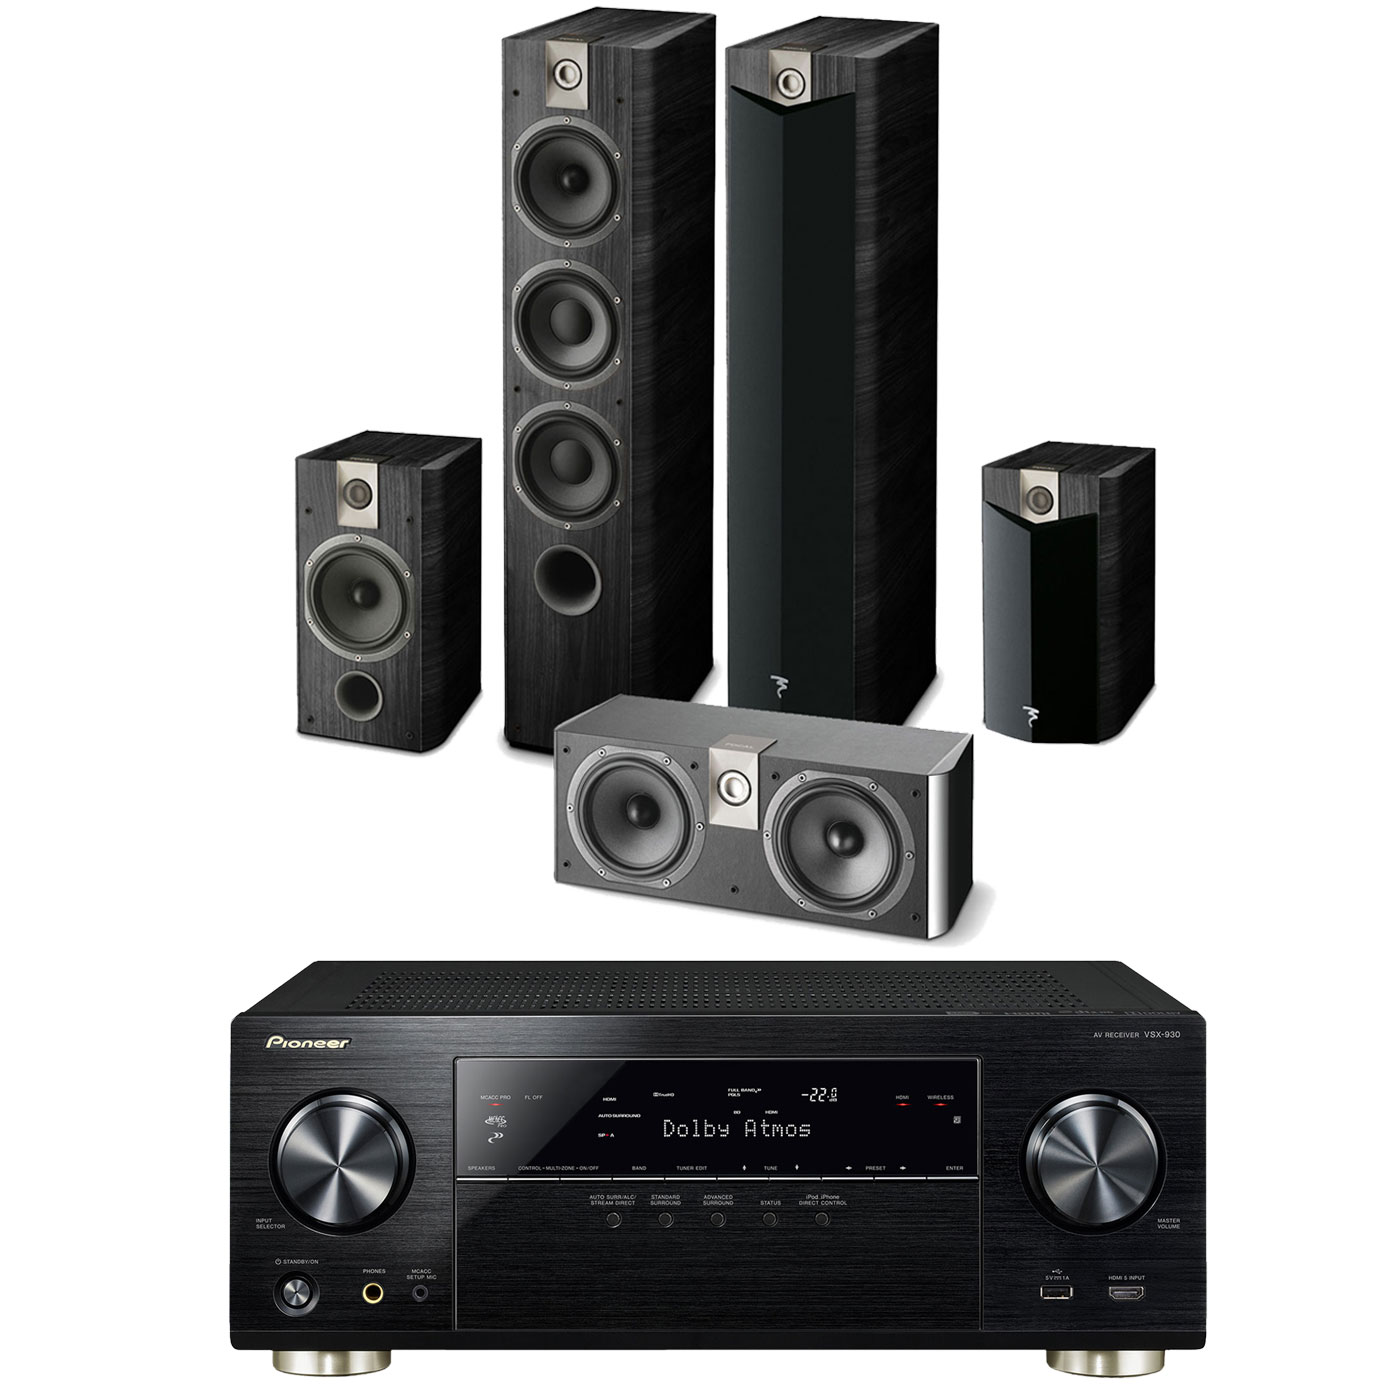 pioneer vsx 930 noir focal chorus 727 v2 706 v2 cc 700 ensemble home cin ma pioneer sur. Black Bedroom Furniture Sets. Home Design Ideas